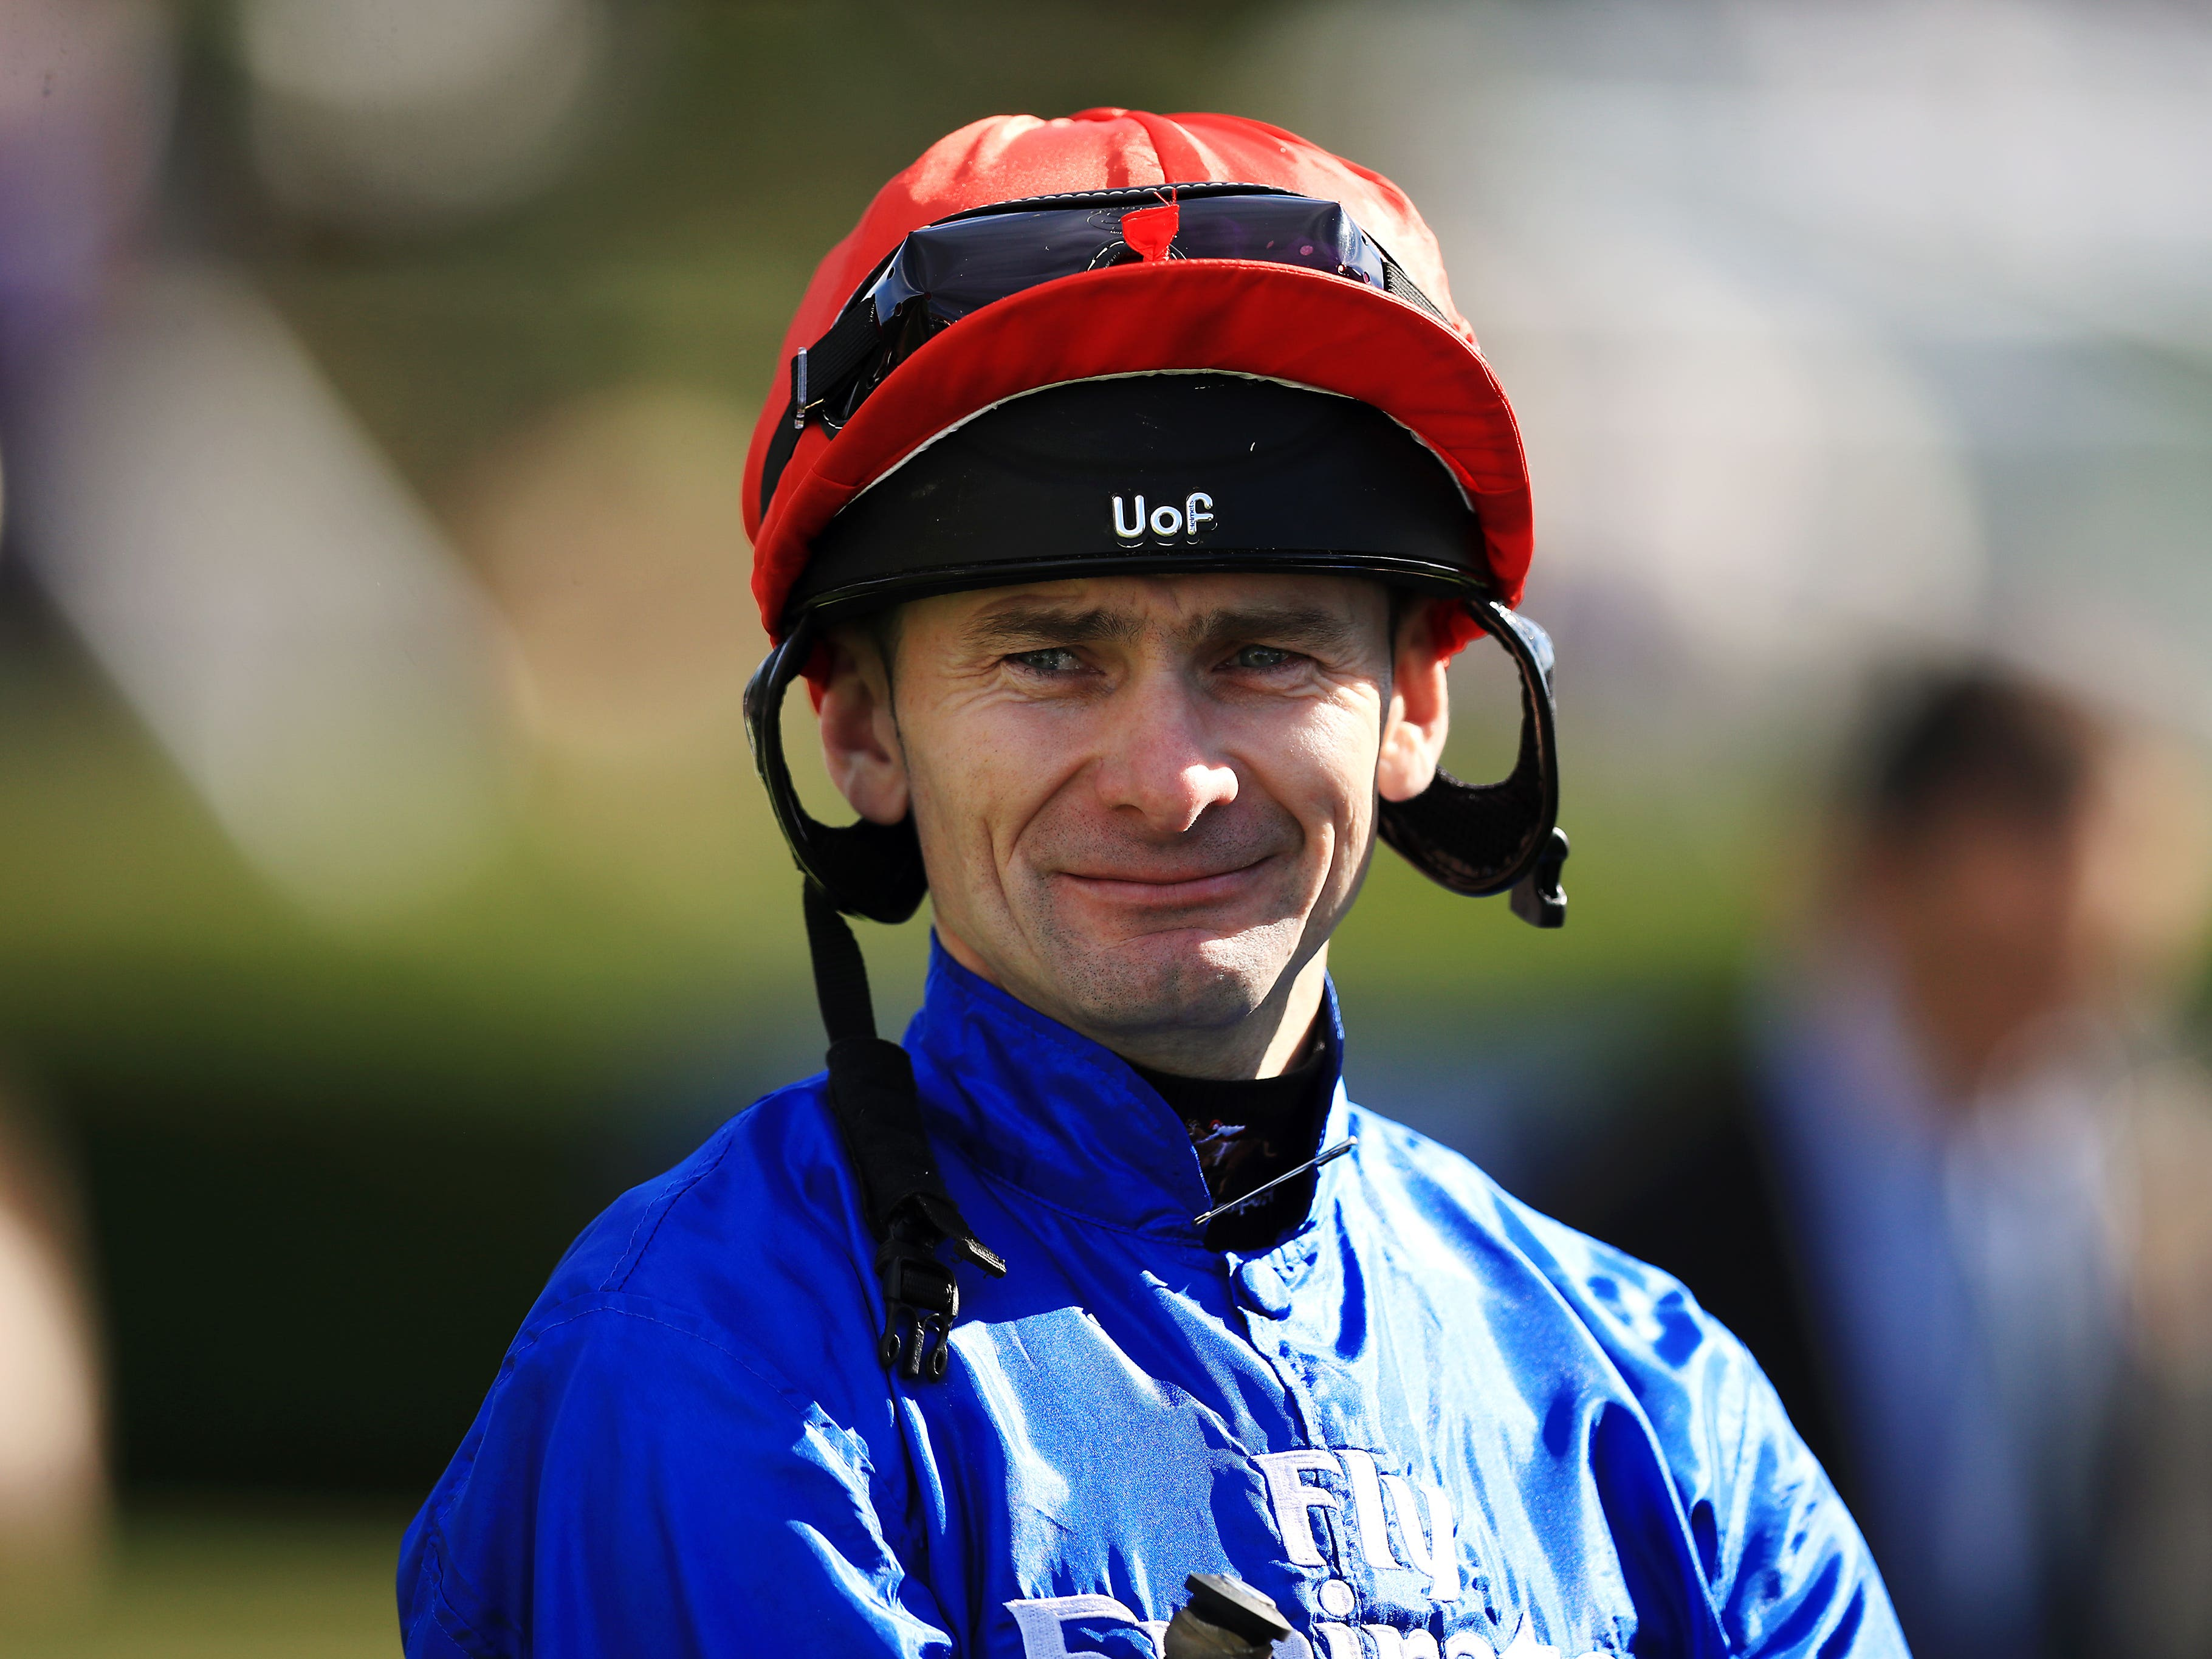 Jockey Robert Havlin has successfully appealed against a 10-day ban at Yarmouth (Mike Egerton/PA)